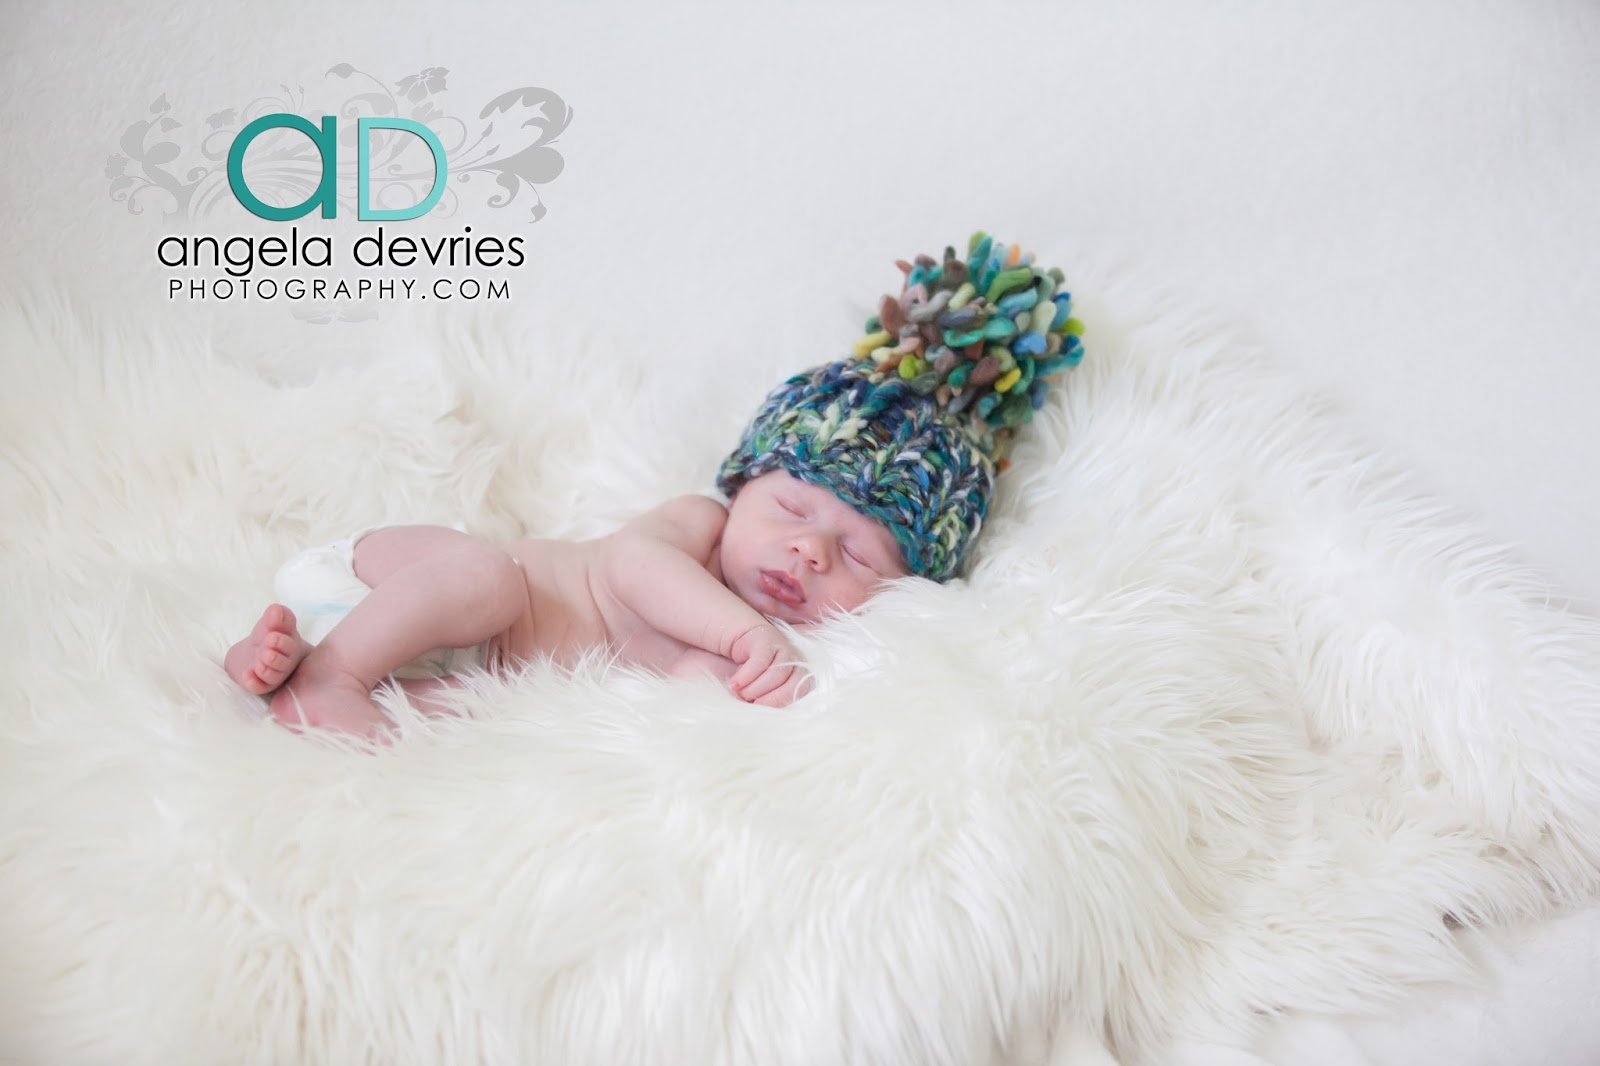 angela devries photography: introducing konnor willson! it was so